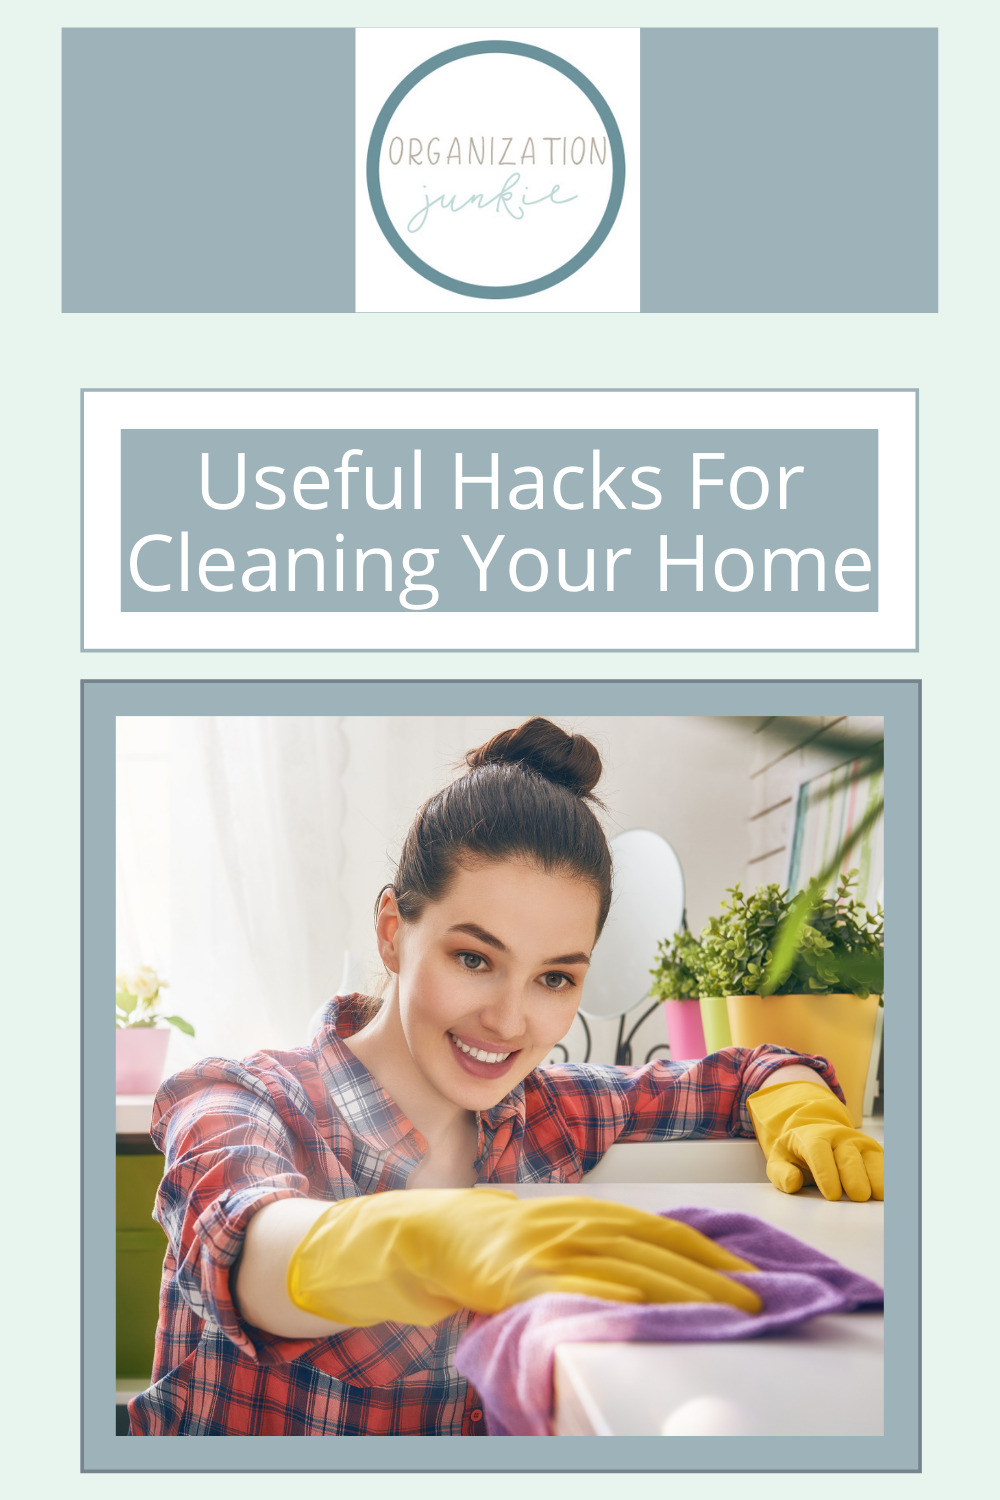 Organizationjunkie.com has the best hacks for making cleaning and organizing easier and more fun! Check out these simple hacks that will make your housekeeping go by quickly.